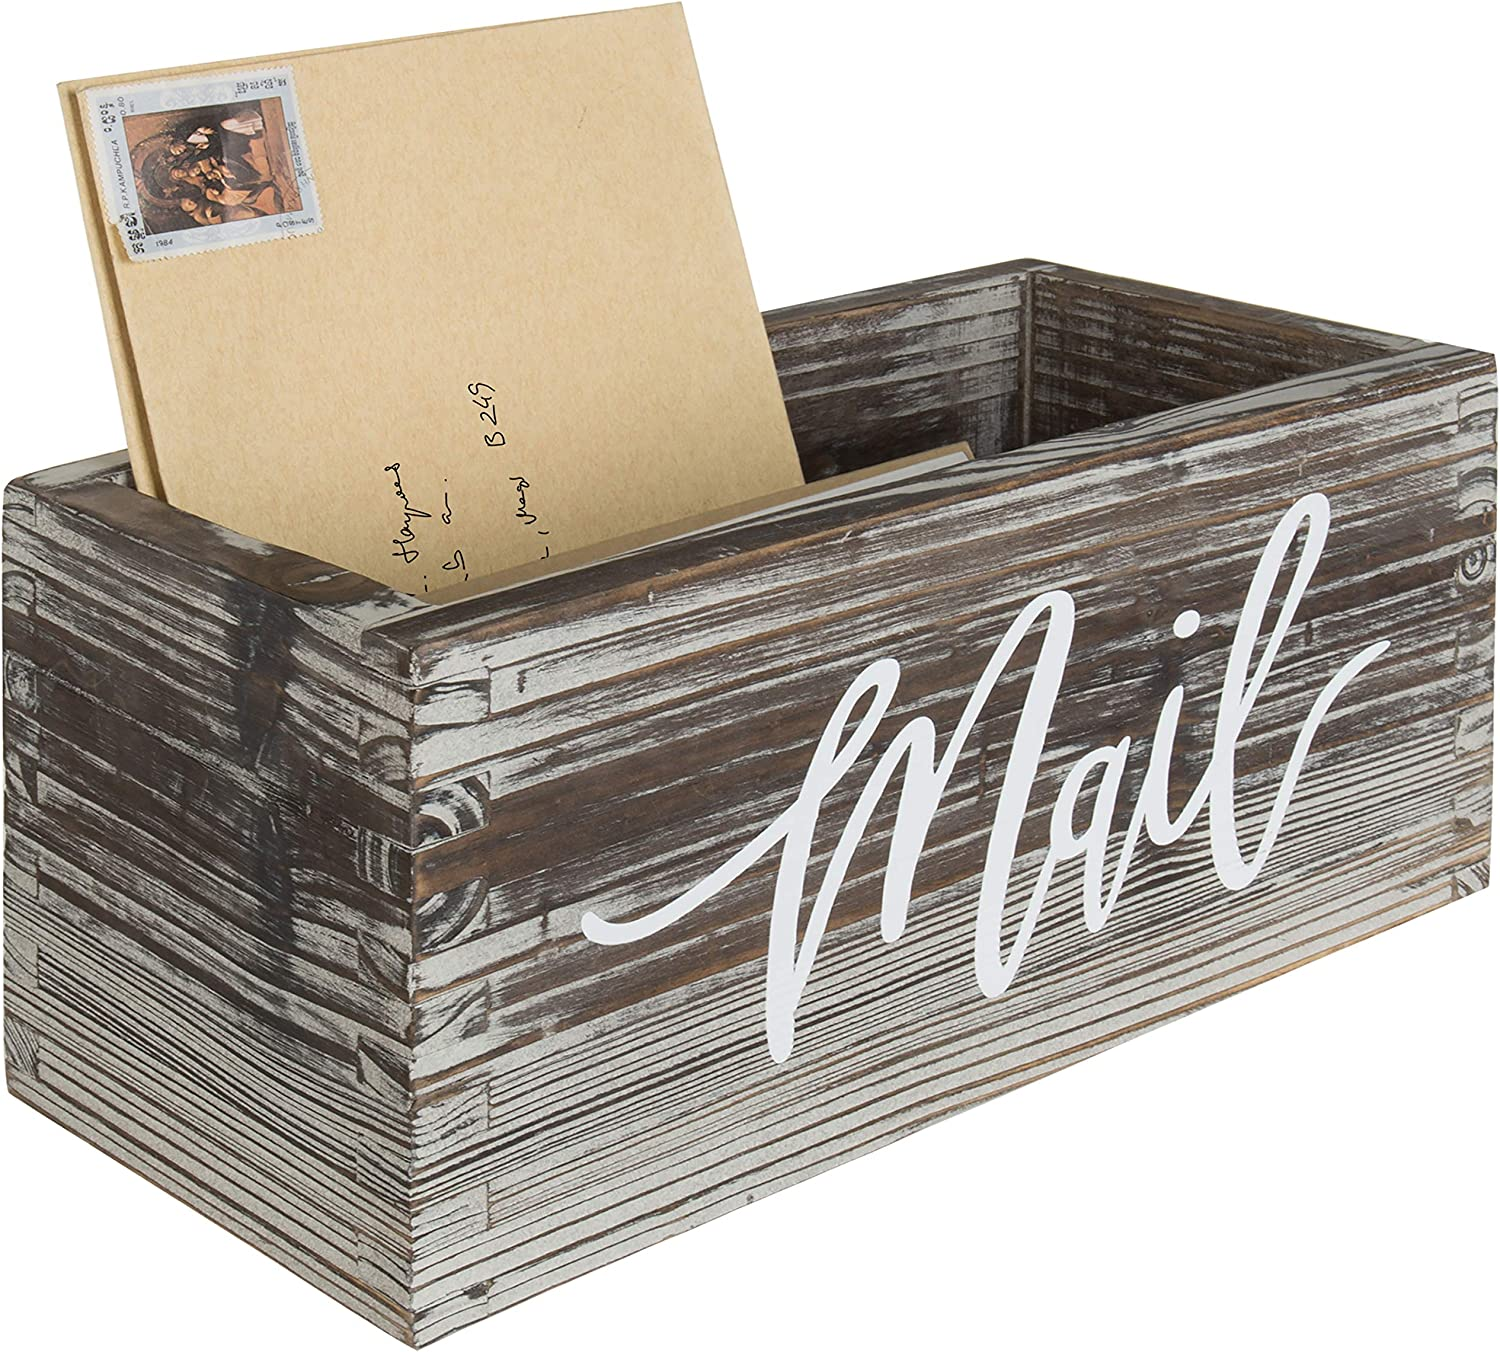 MyGift Recommended Rustic Torched Wood Tabletop Mail Stora Holder Colorado Springs Mall Decorative